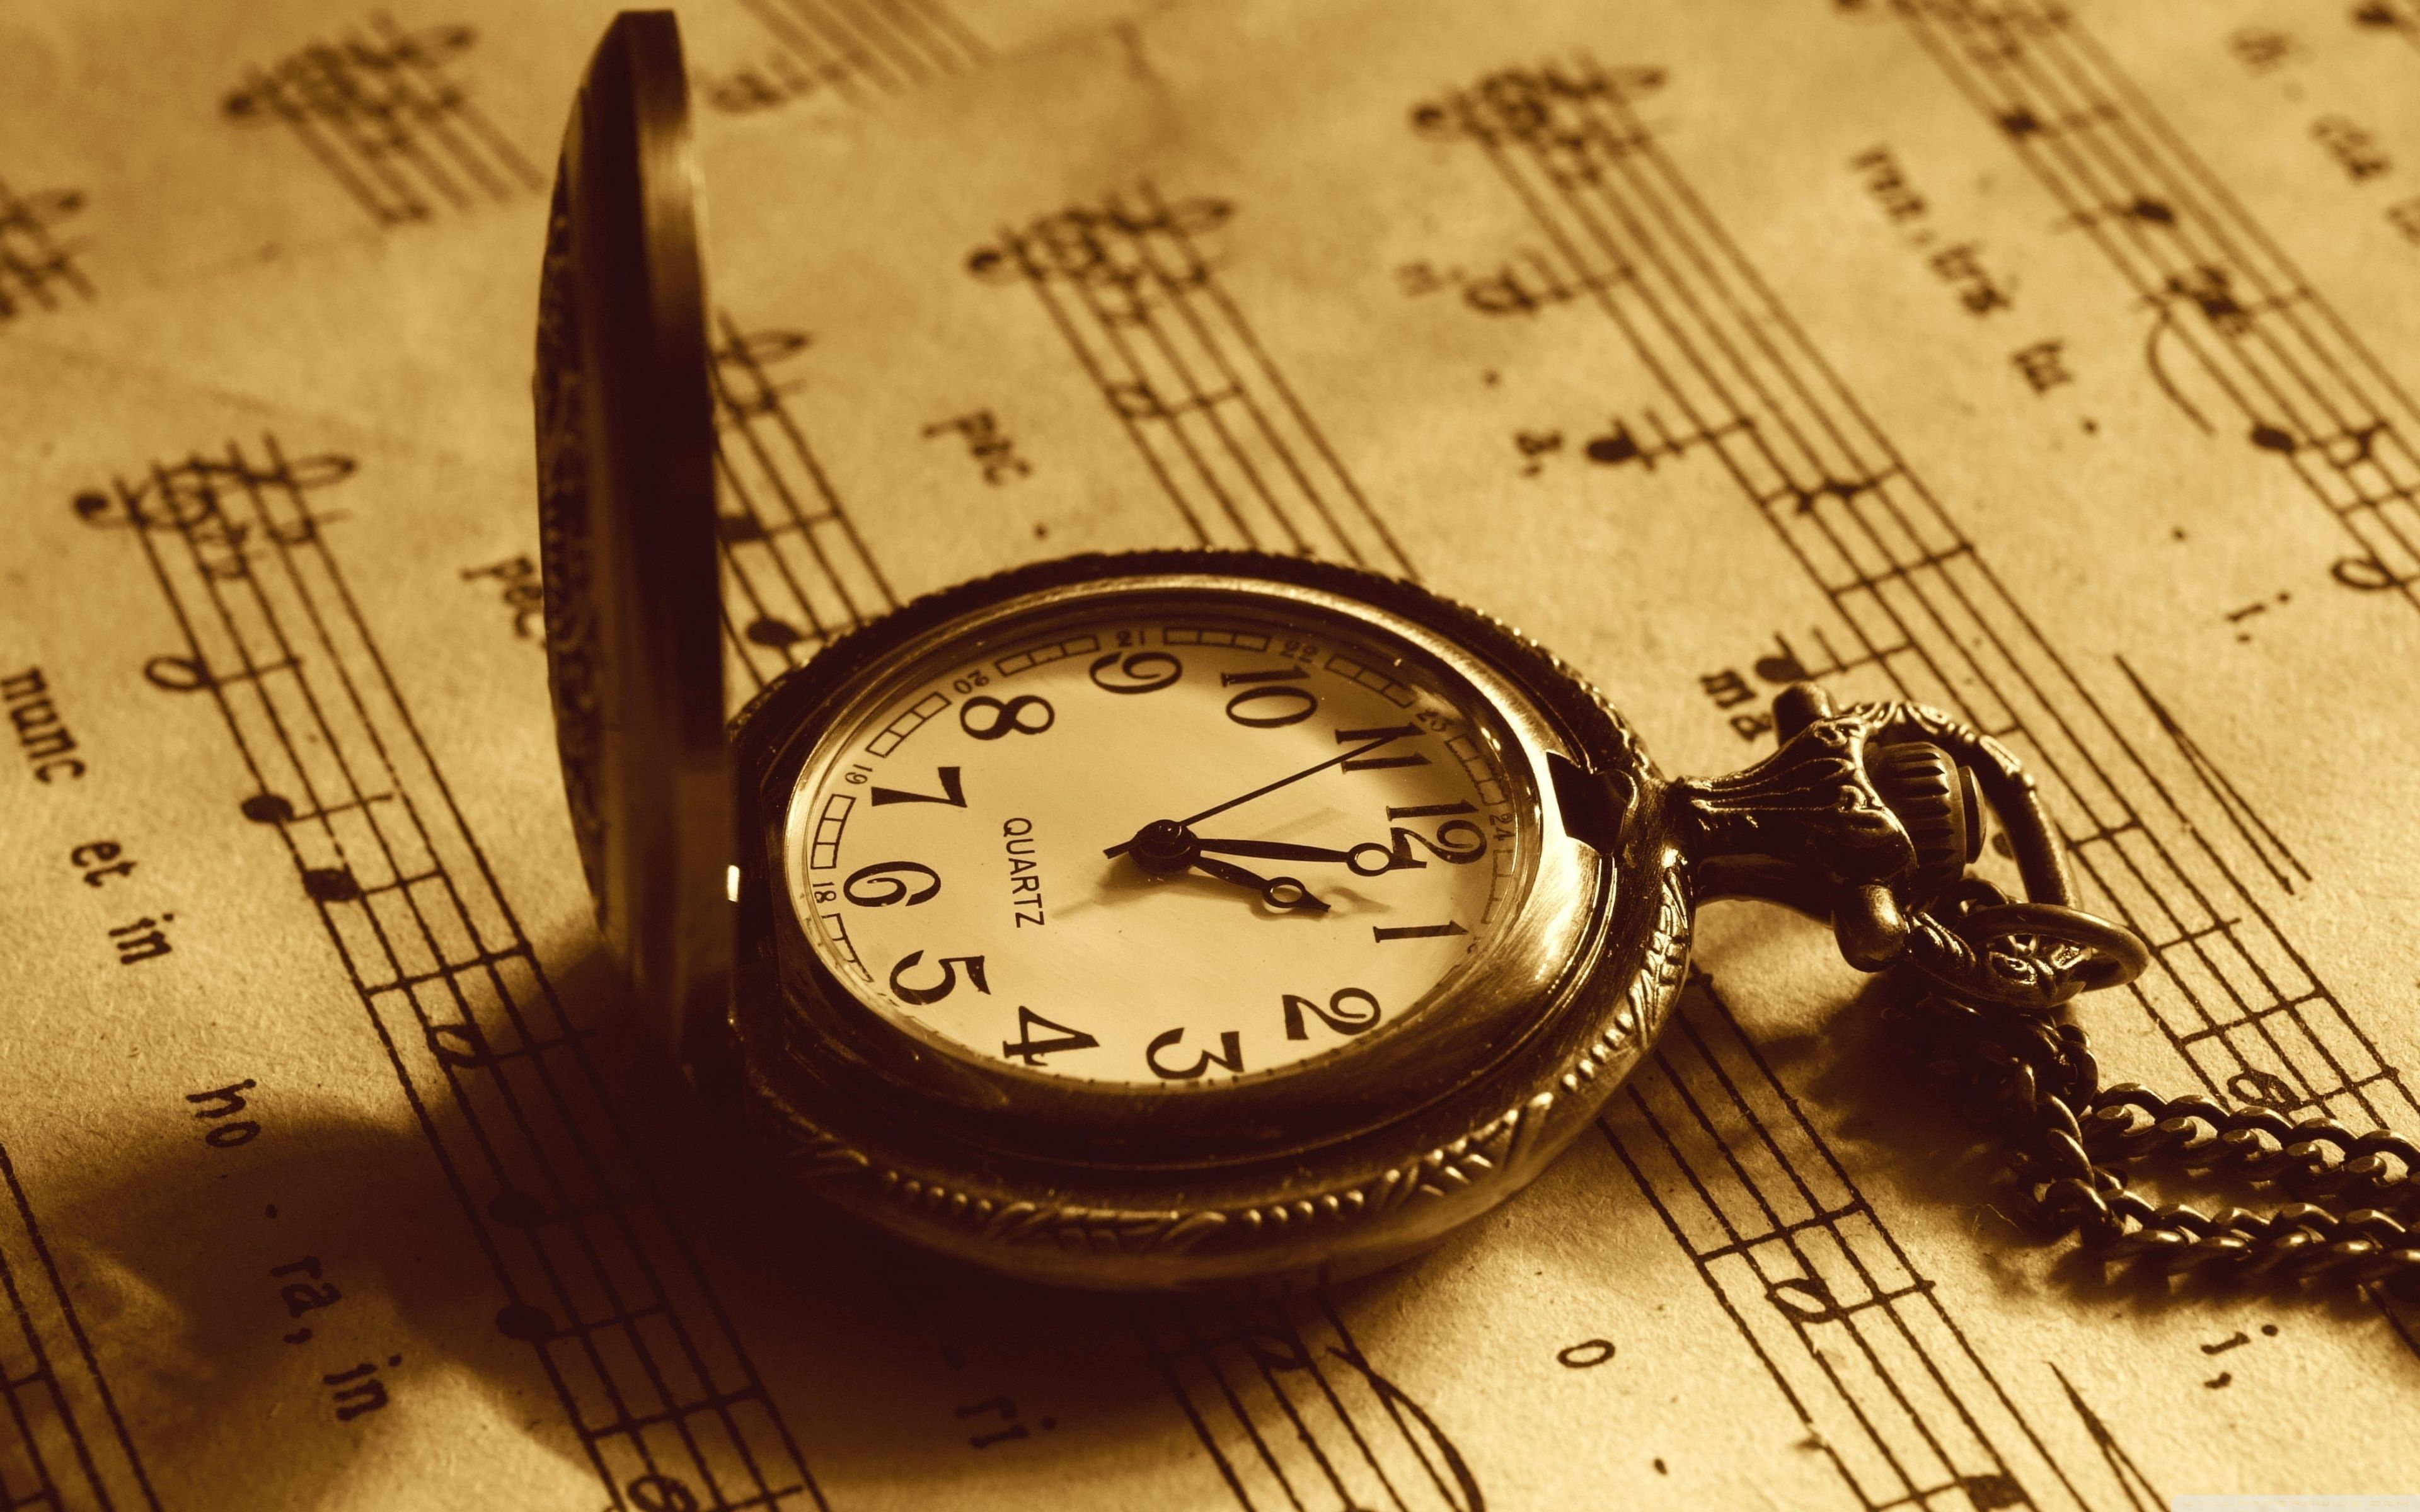 Vintage Watch Wallpapers - Top Free Vintage Watch Backgrounds -  WallpaperAccess